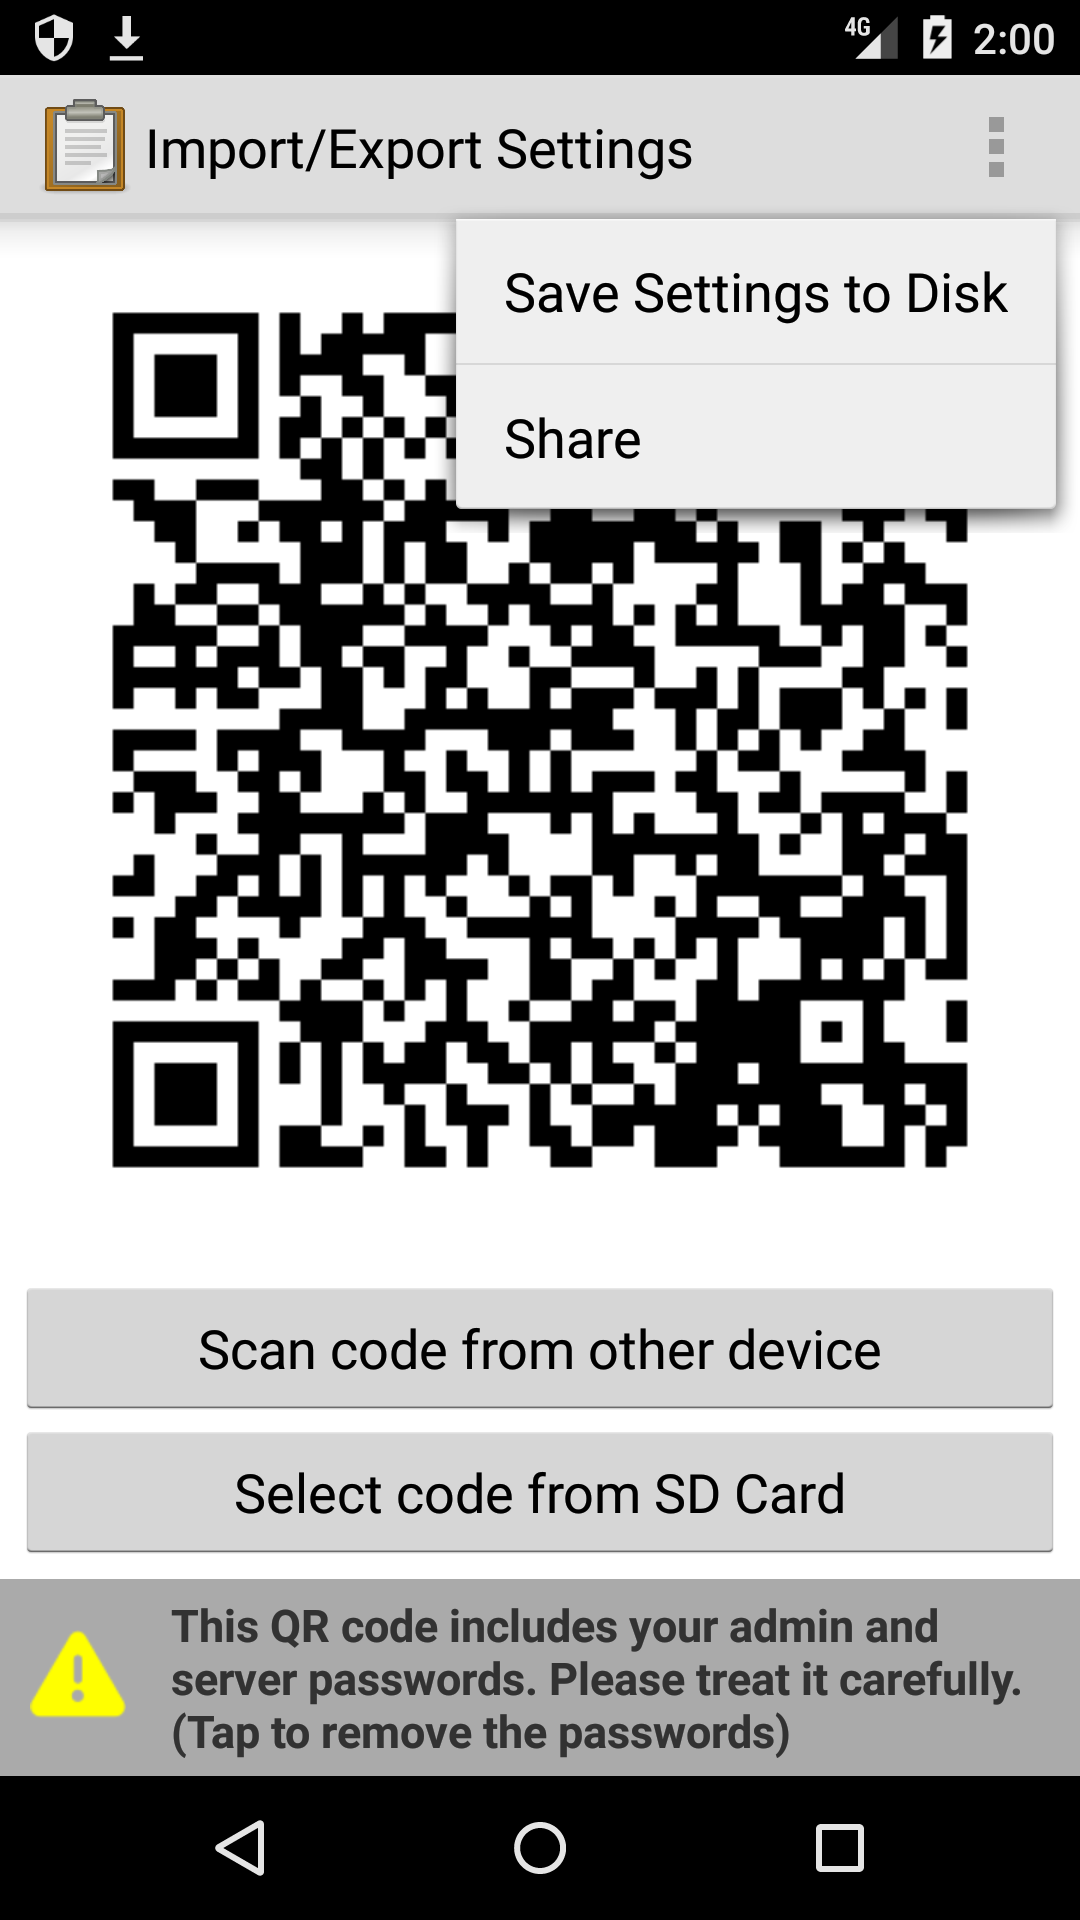 Share an image of the QR code.